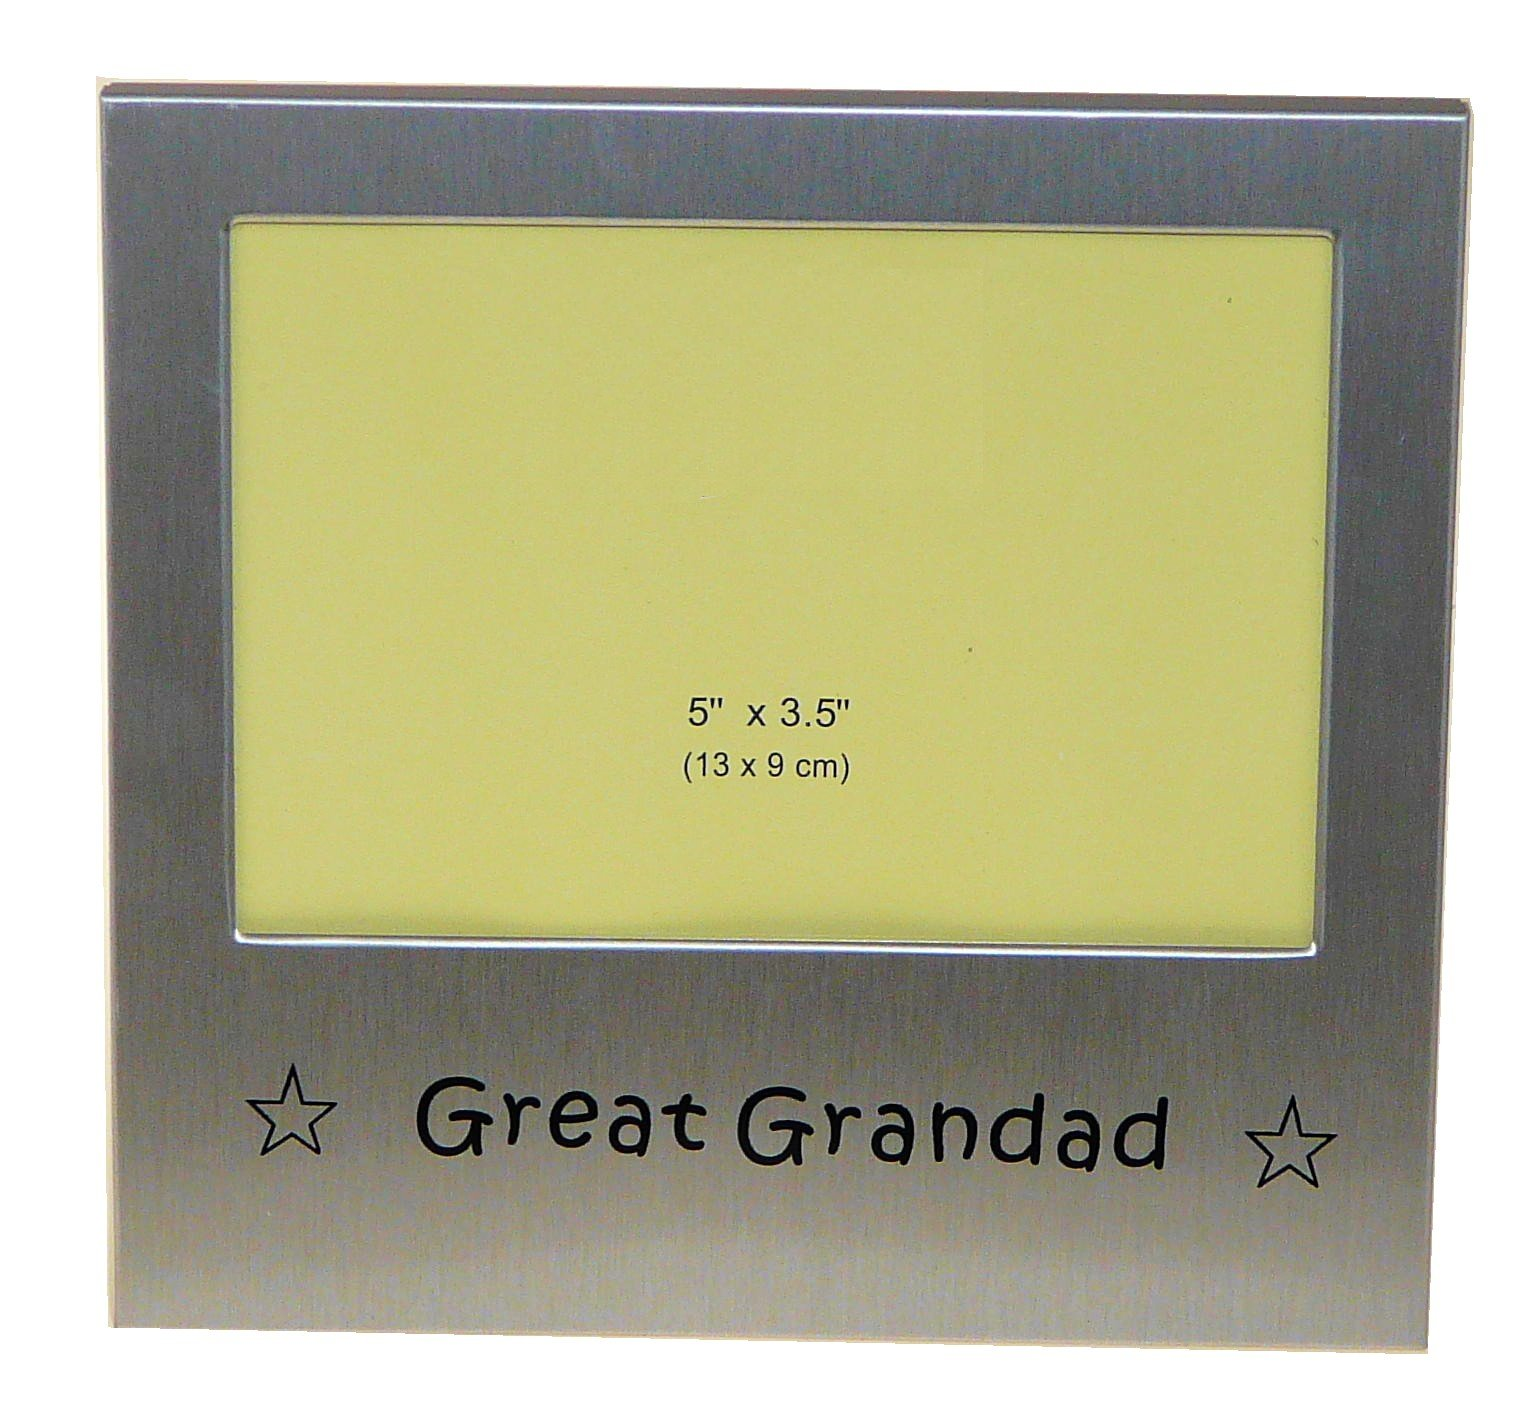 Details about Great Grandad Photo Picture Frame Gift 5 x 3.5